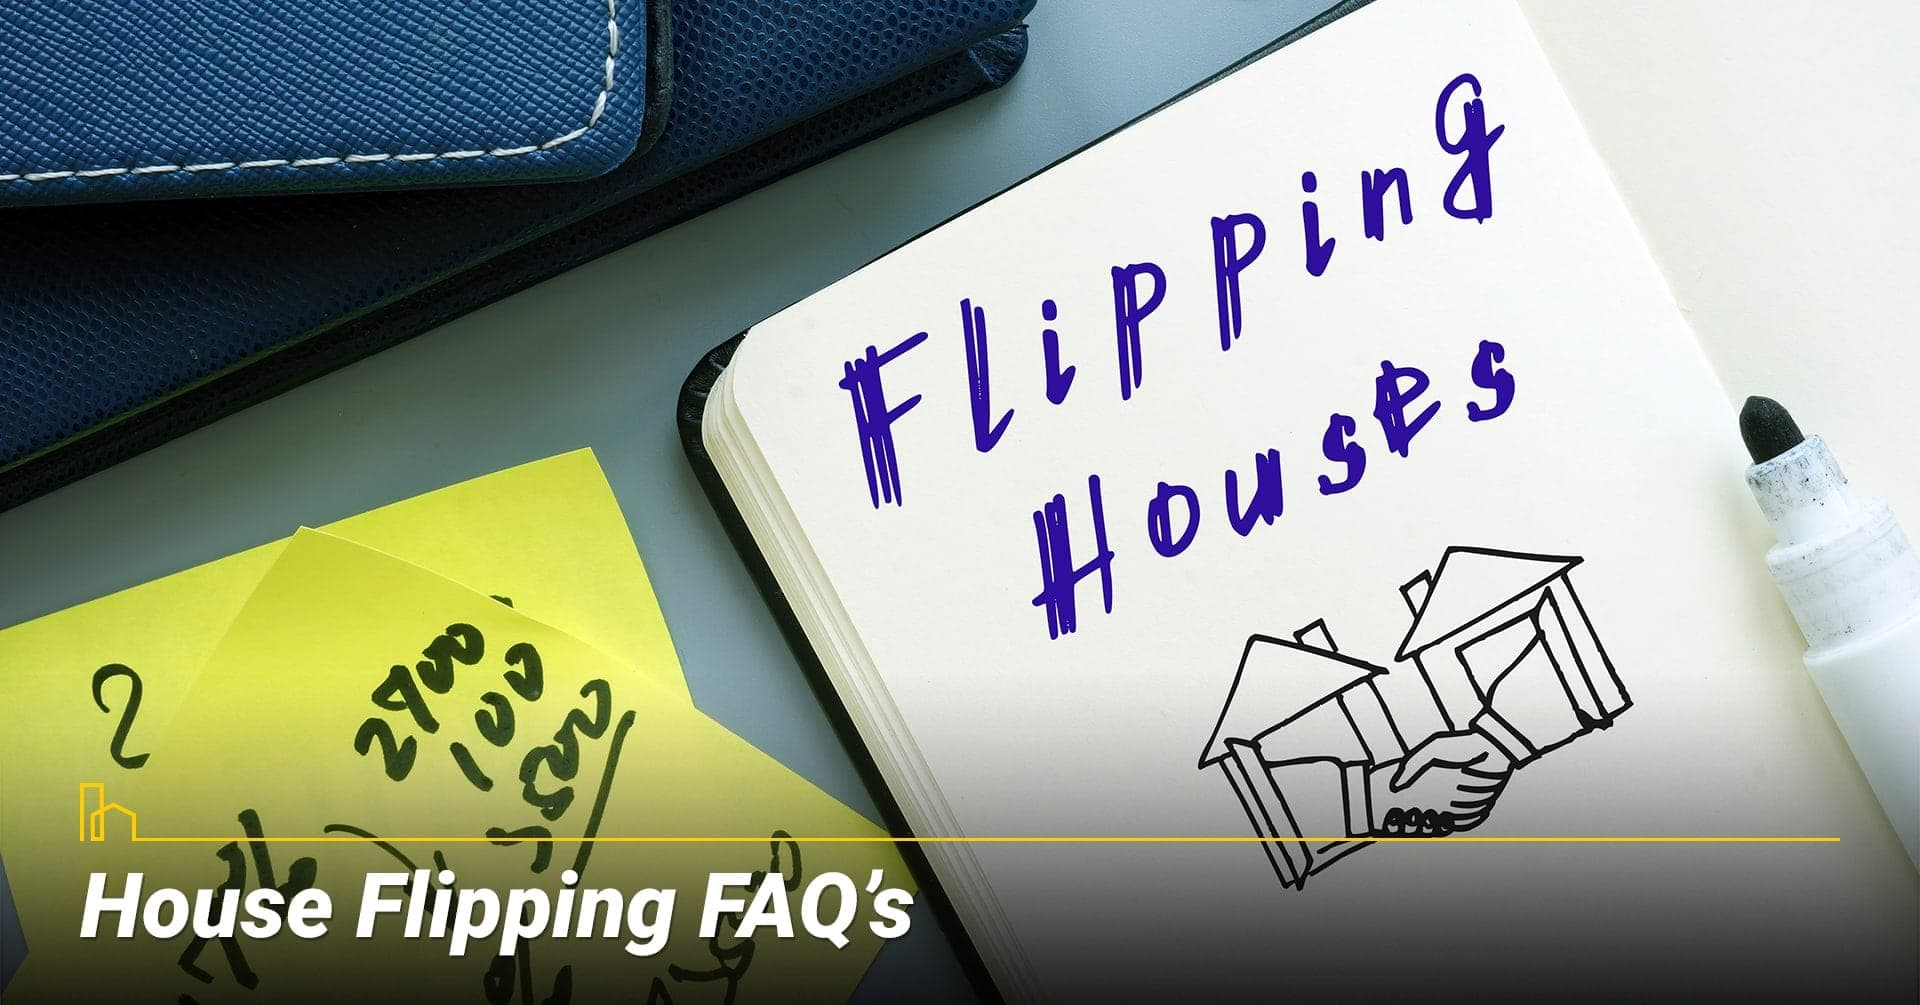 House Flipping FAQ's, ask questions about flipping a house